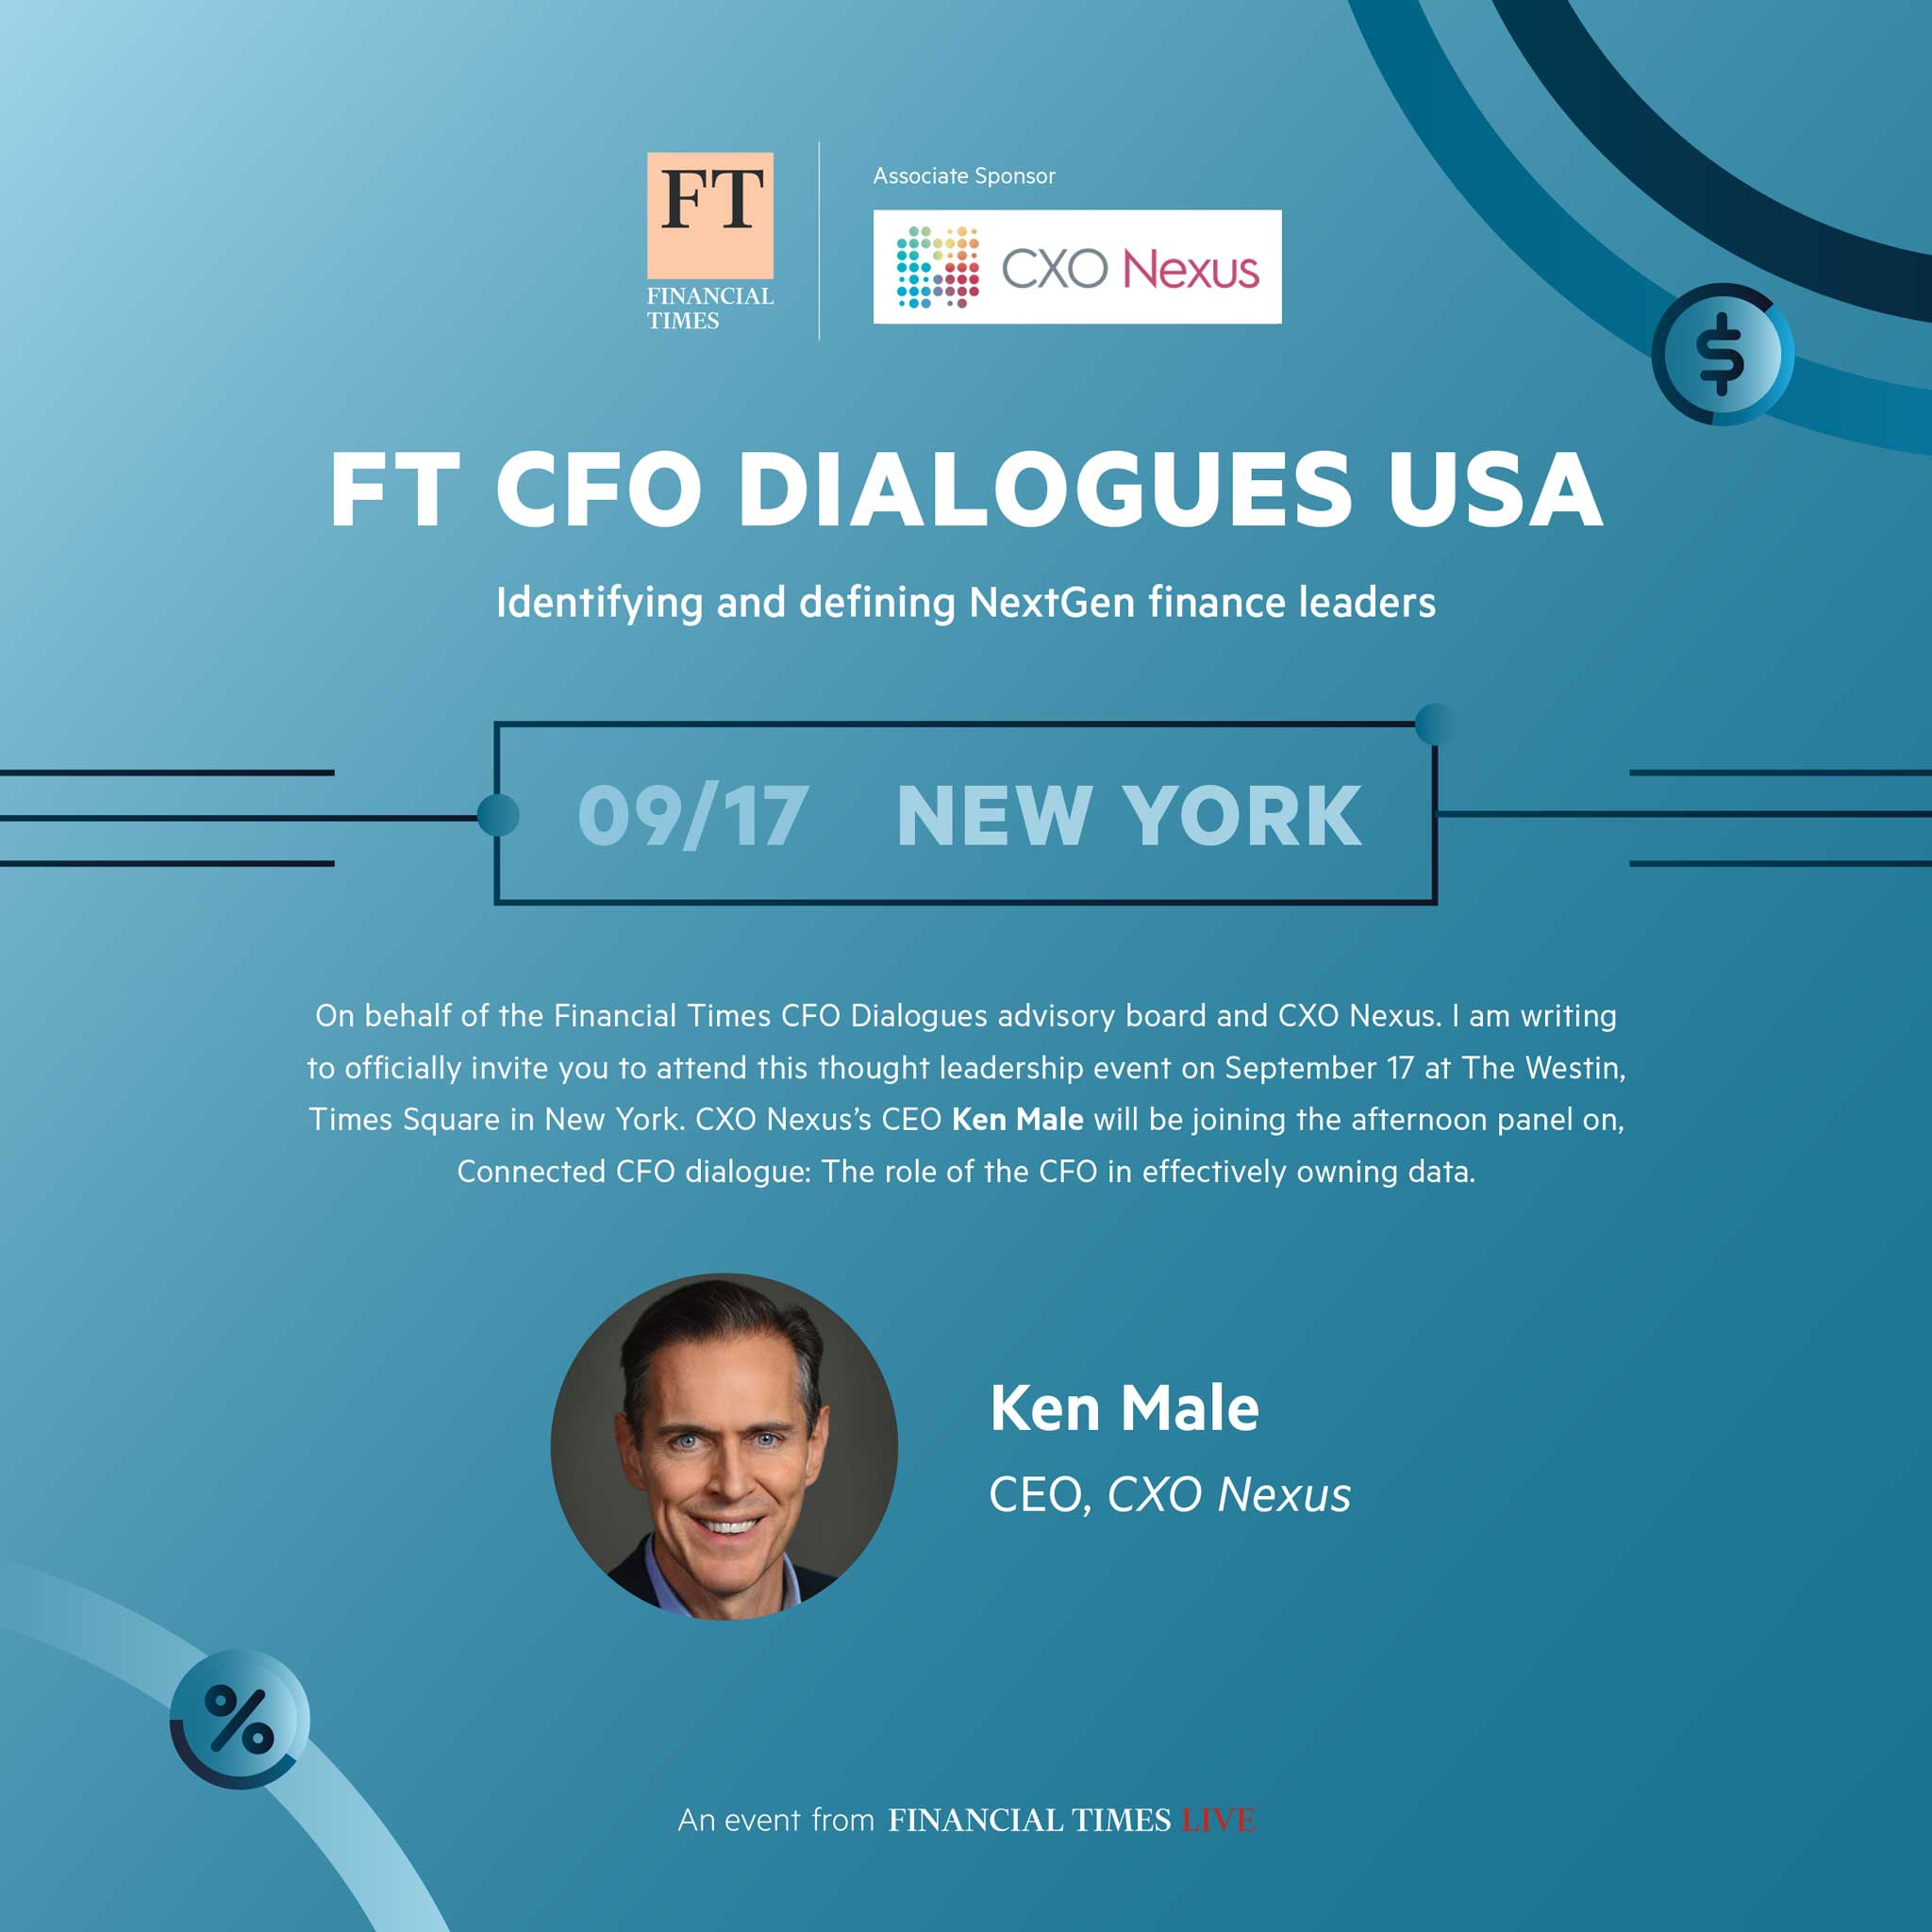 Financial Times CFO Dialogues Sept 17 NYC - Ken Male will be on the afternoon panel on, The Role of the CFO in effectively owning data.